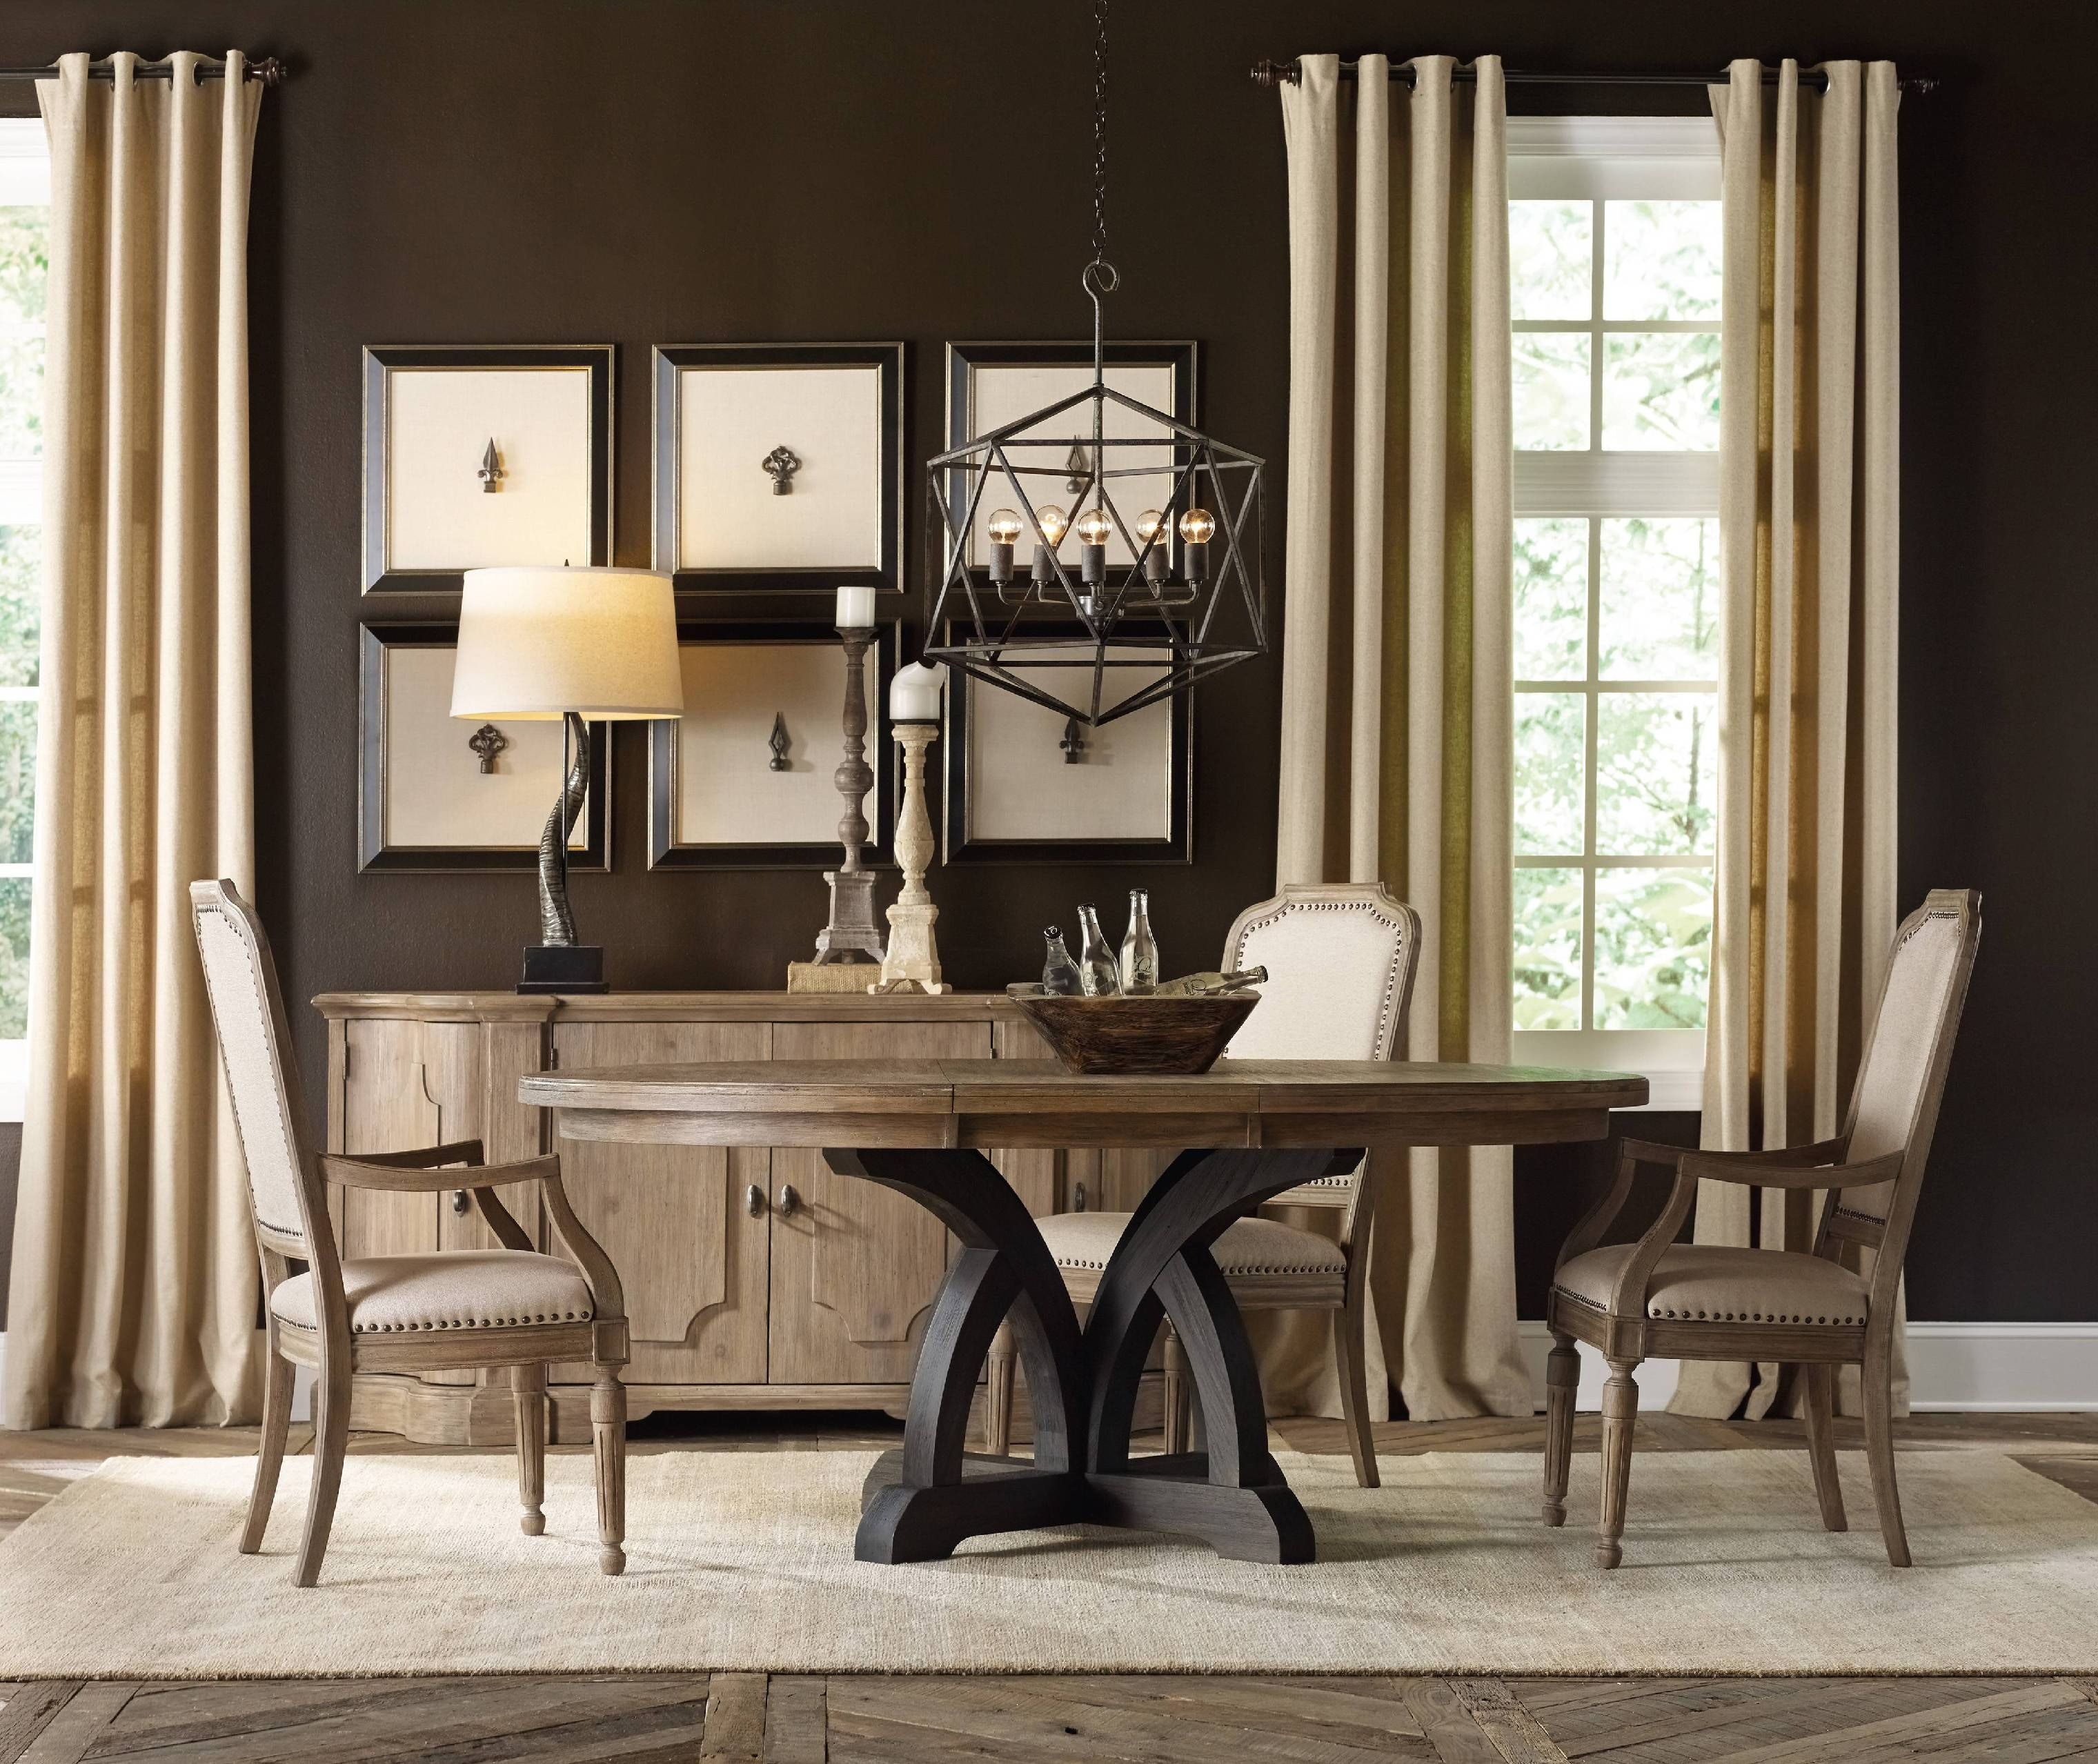 Ordinaire Hooker Furniture Corsica Dark Round Dining Table (Dark Base/Light Top) 5280